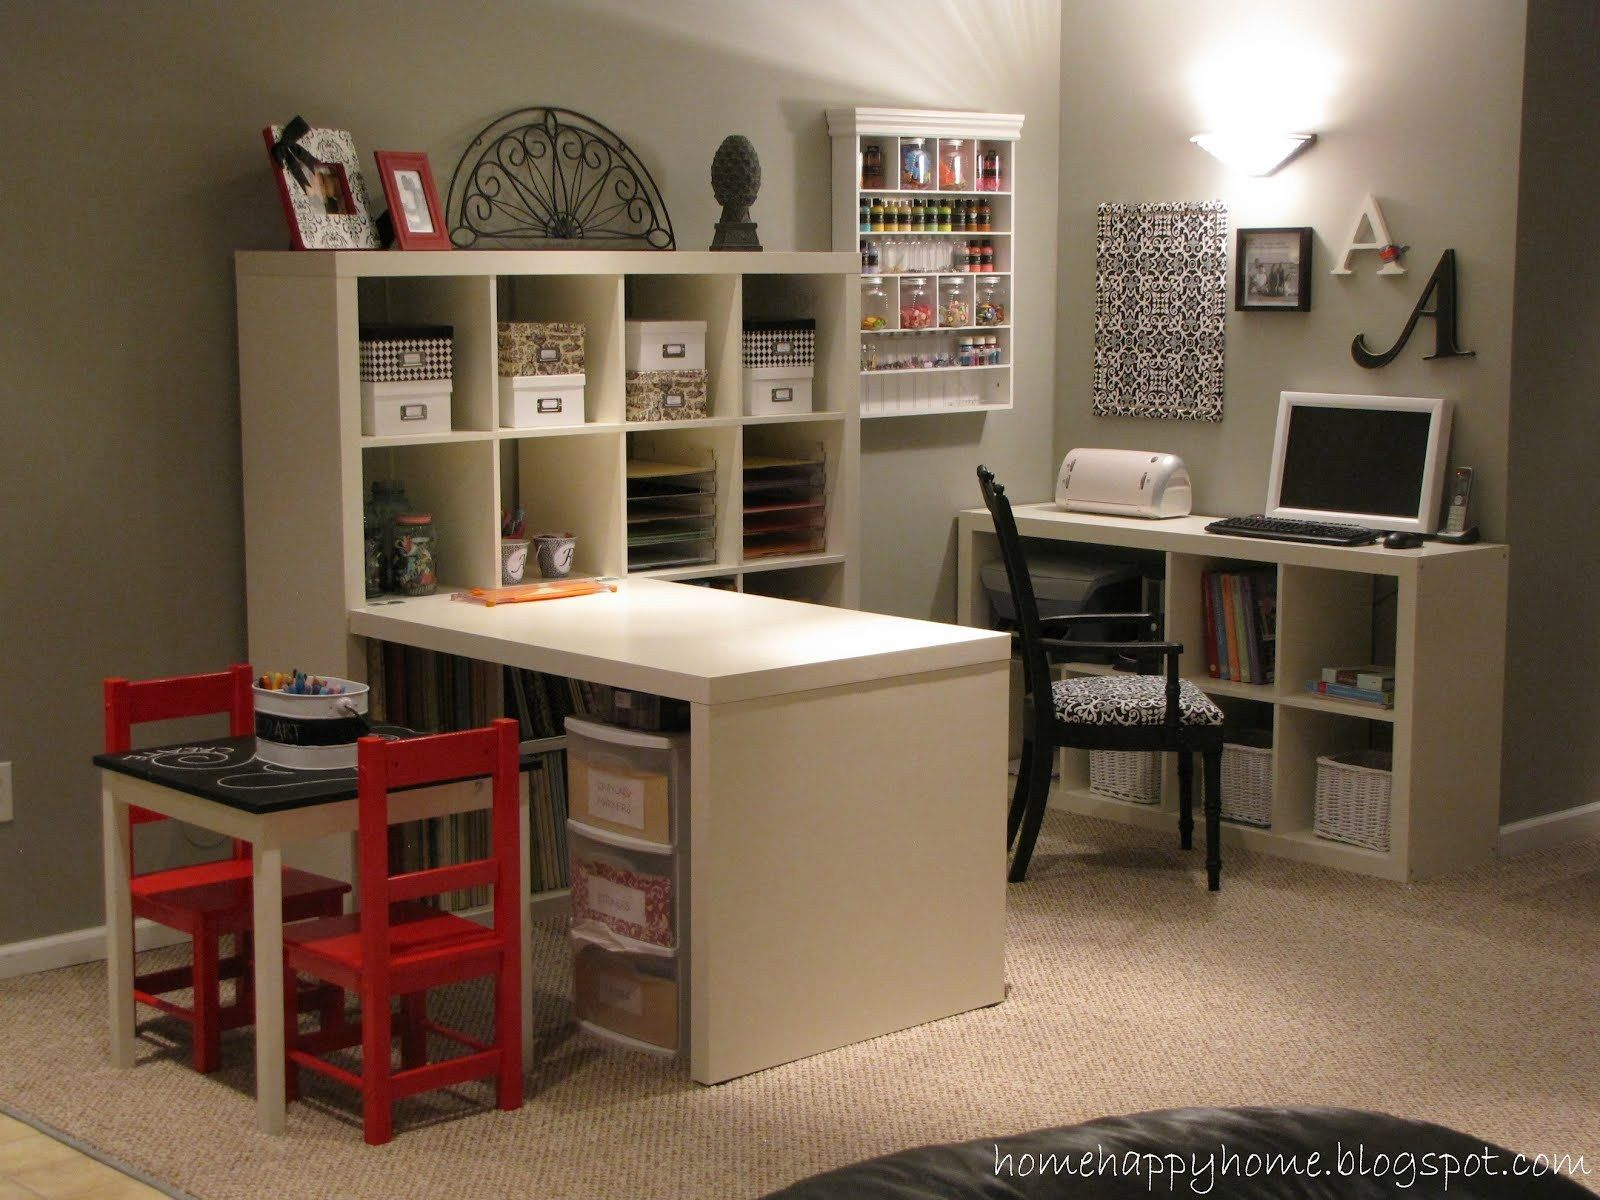 Do It Yourself Home Design: 27 DIY Home Decorating Projects To Make!